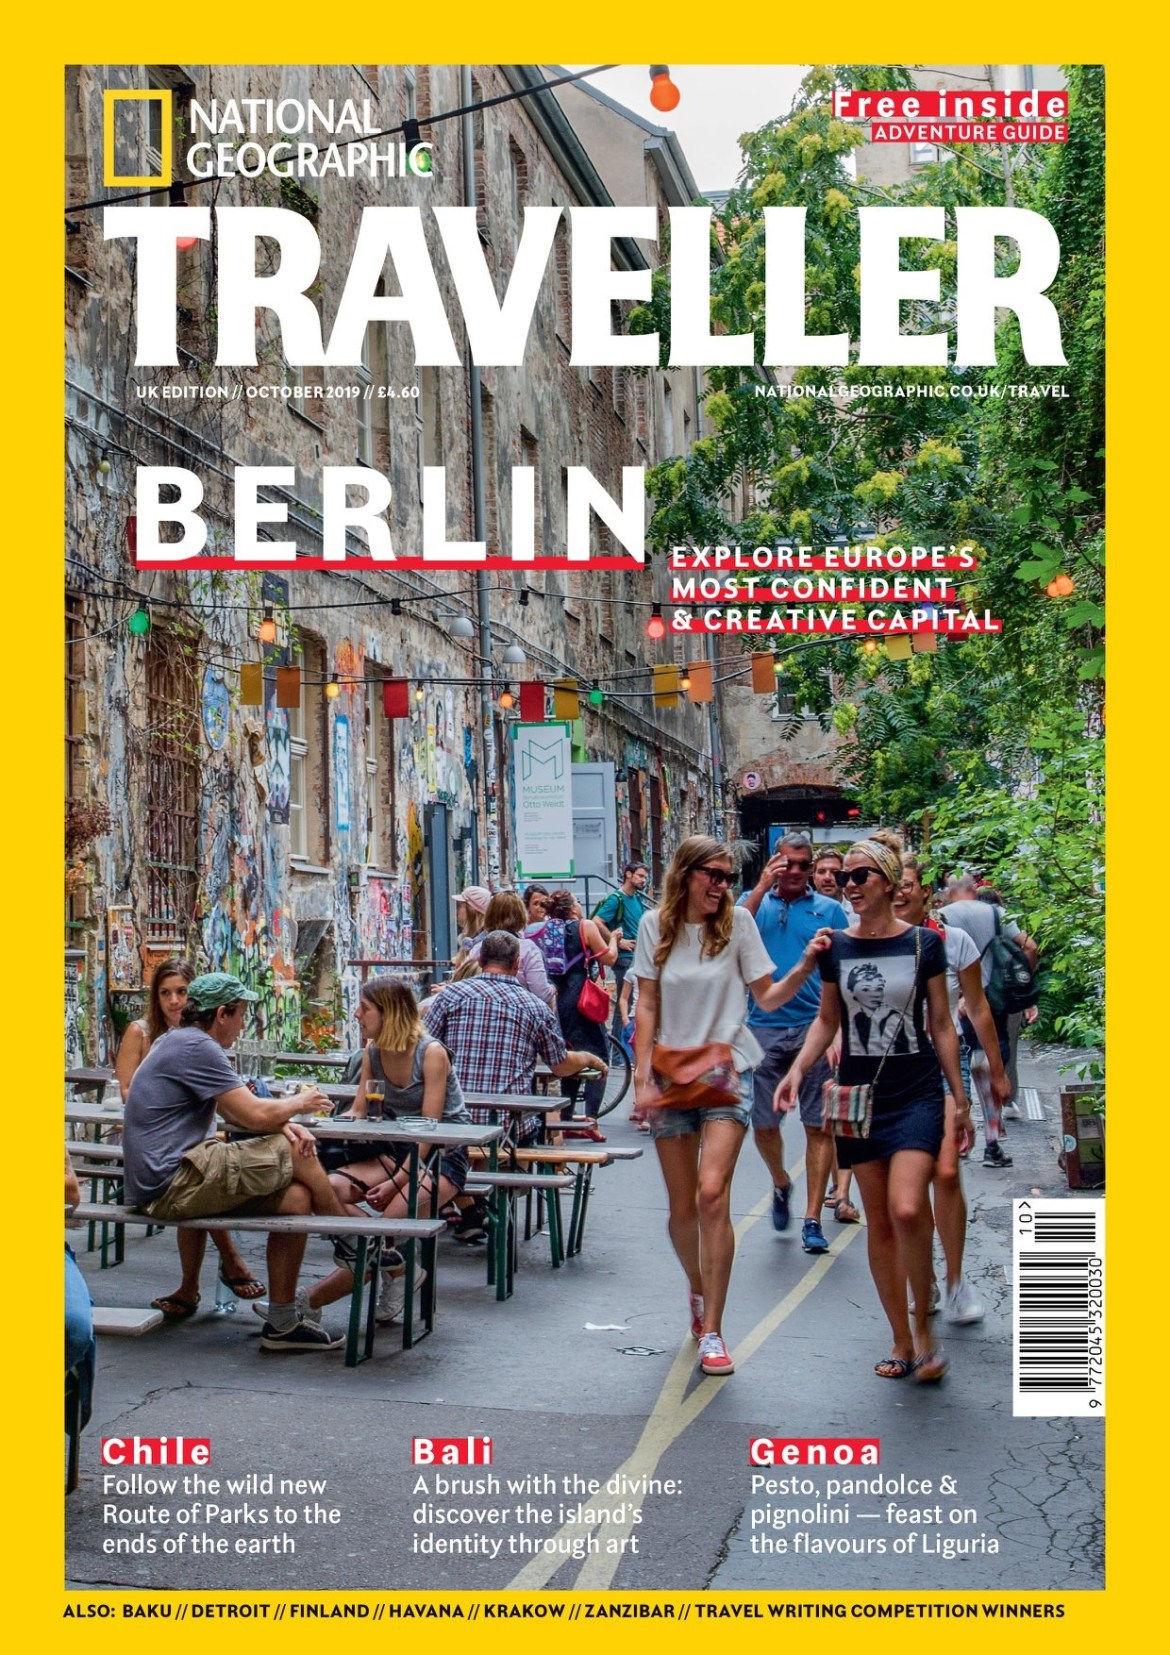 The cover of the National Geographic Traveller UK October 2019 issue